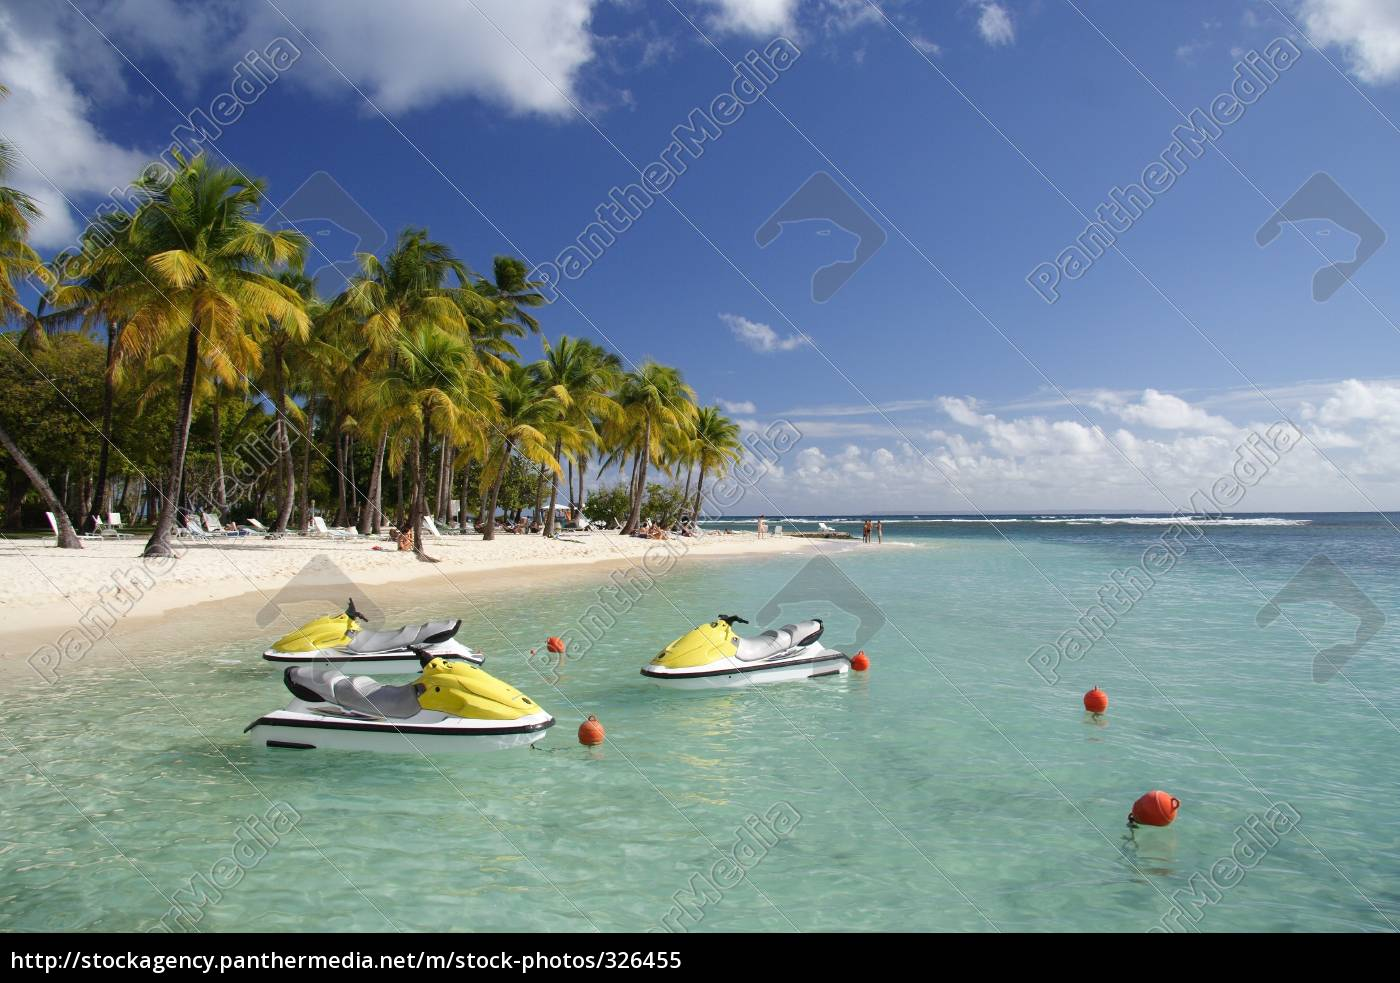 caribbean, watersports - 326455